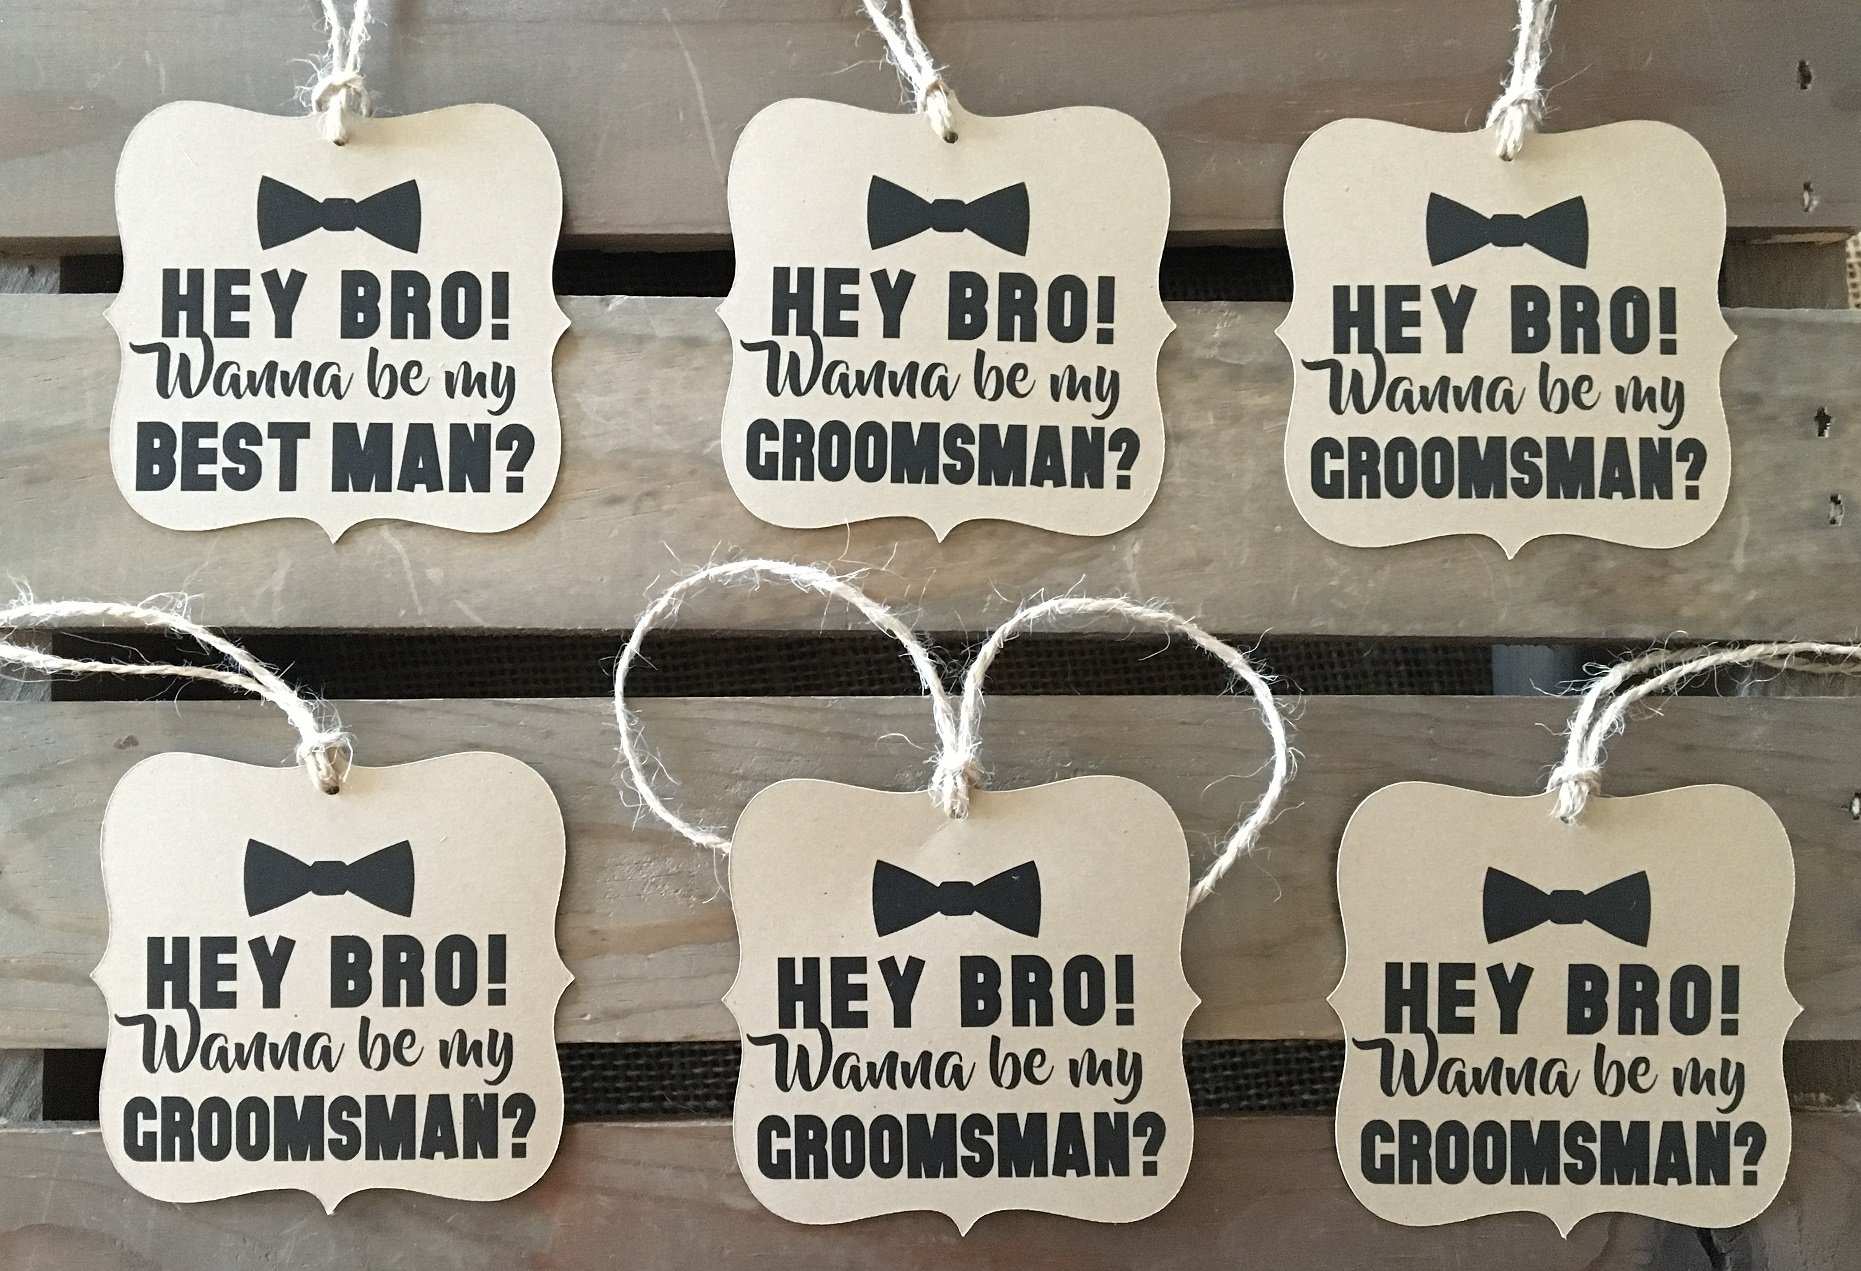 Will you be my Groomsman - Best Man - Set of 6 Square Bracket Shaped - Rustic Modern - WEDDING - Bow Tie - Personalize - Recycled - Eco Friendly